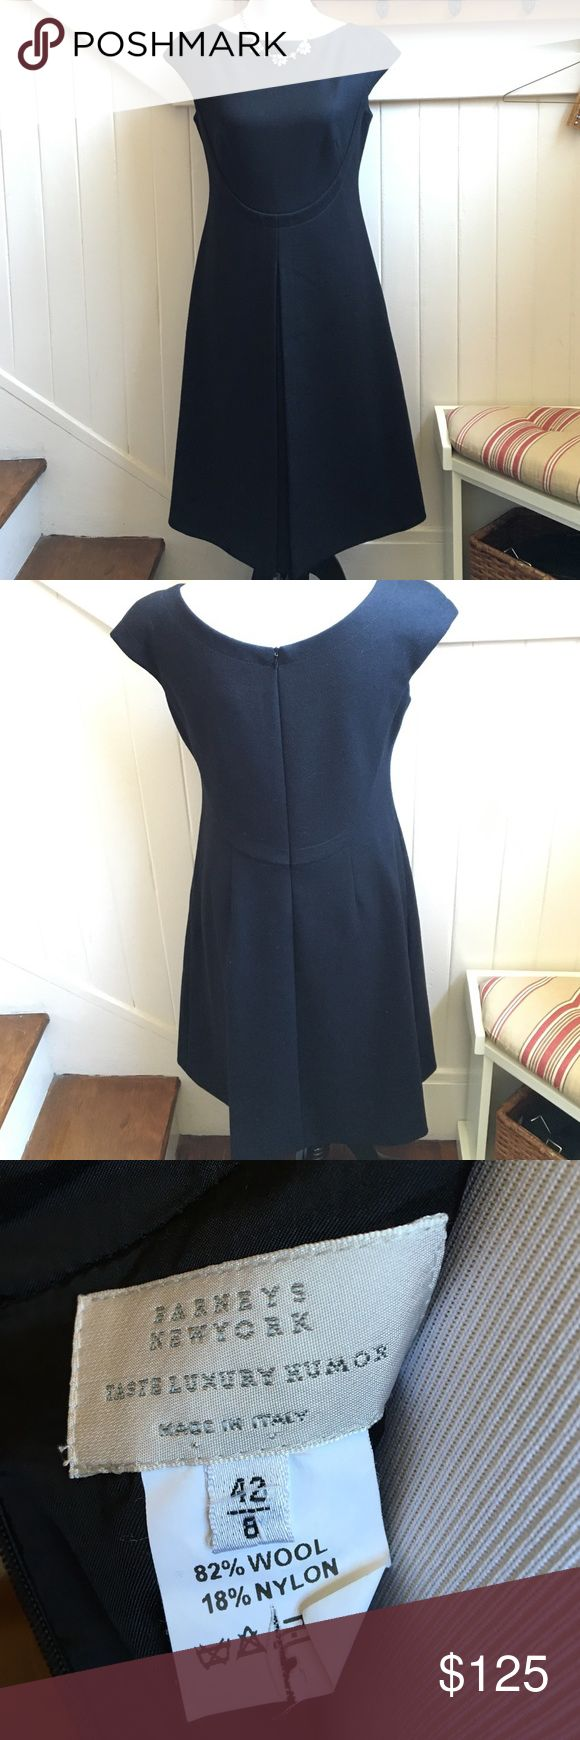 "⚜SALE⚜Barneys New York Black Wool Dress Excellent condition gorgeous wool blend dress. Measures 40"" from shoulder to hem. Beautiful sleek detailing at the bust and and pleat in the front. Classic piece to add to your collection Barneys New York CO-OP Dresses"